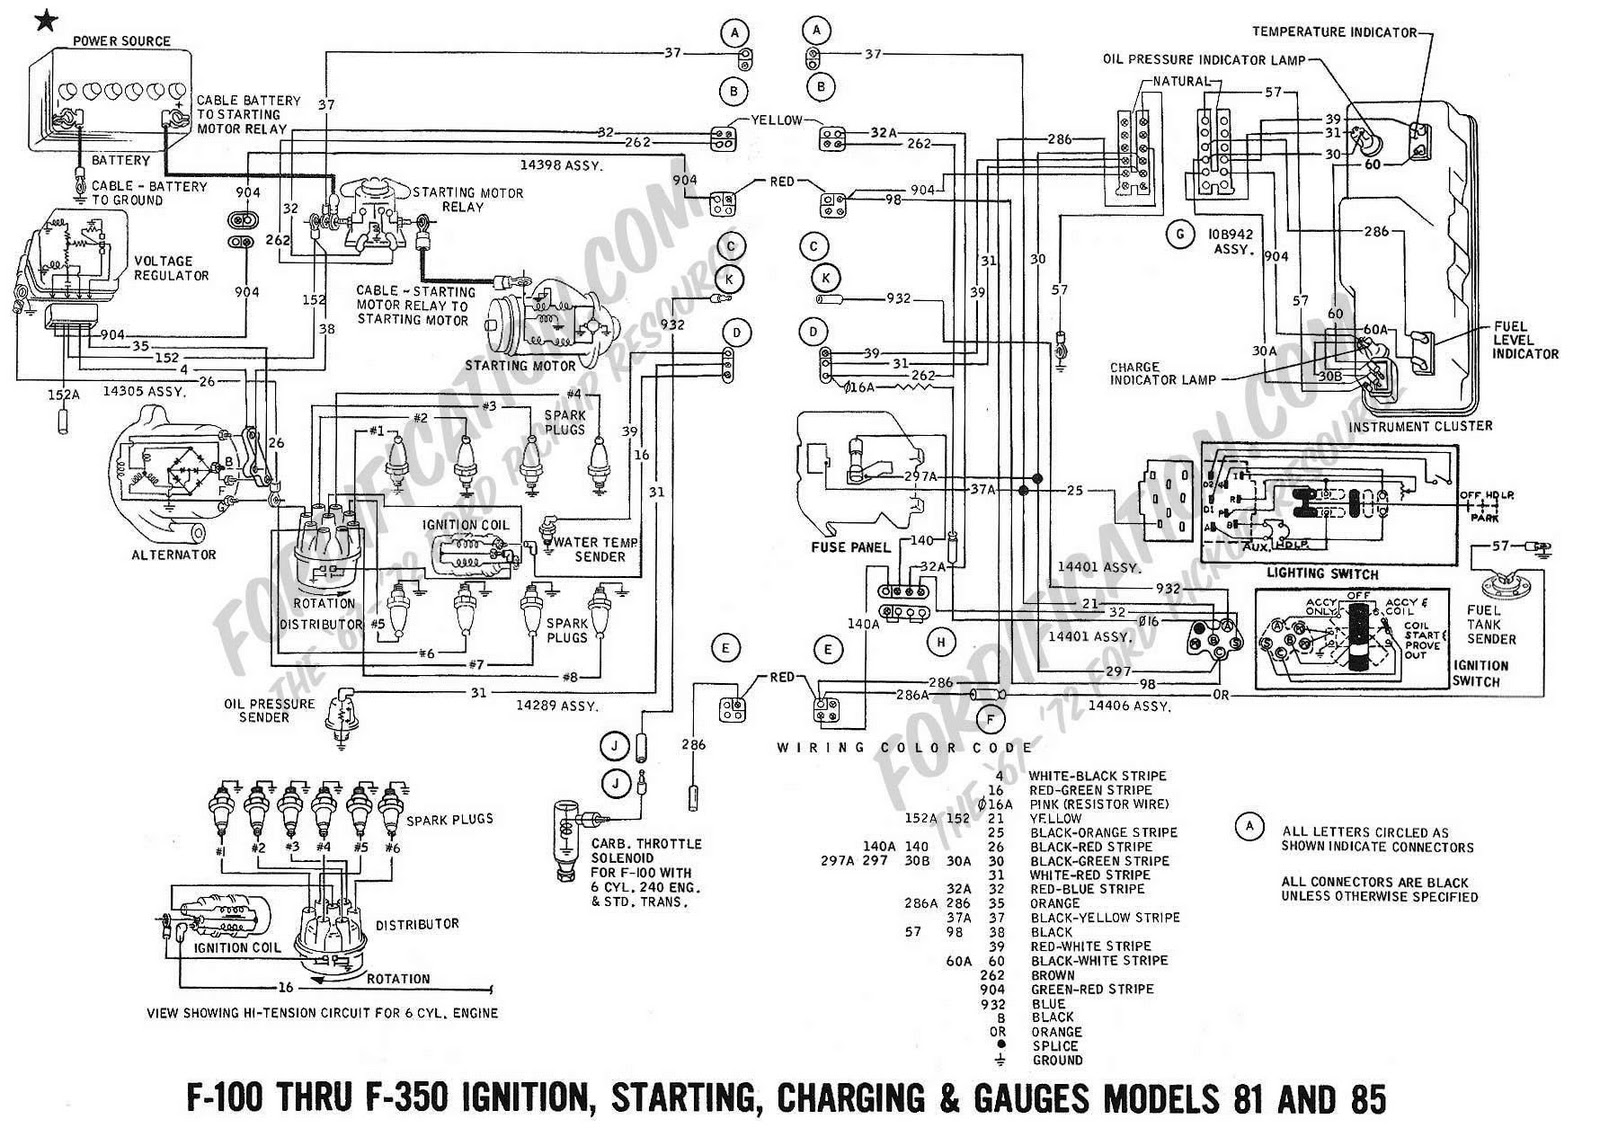 Chevy Fuel Gauge Wiring Diagram 89 Kodiak Corvette F250 The 1987